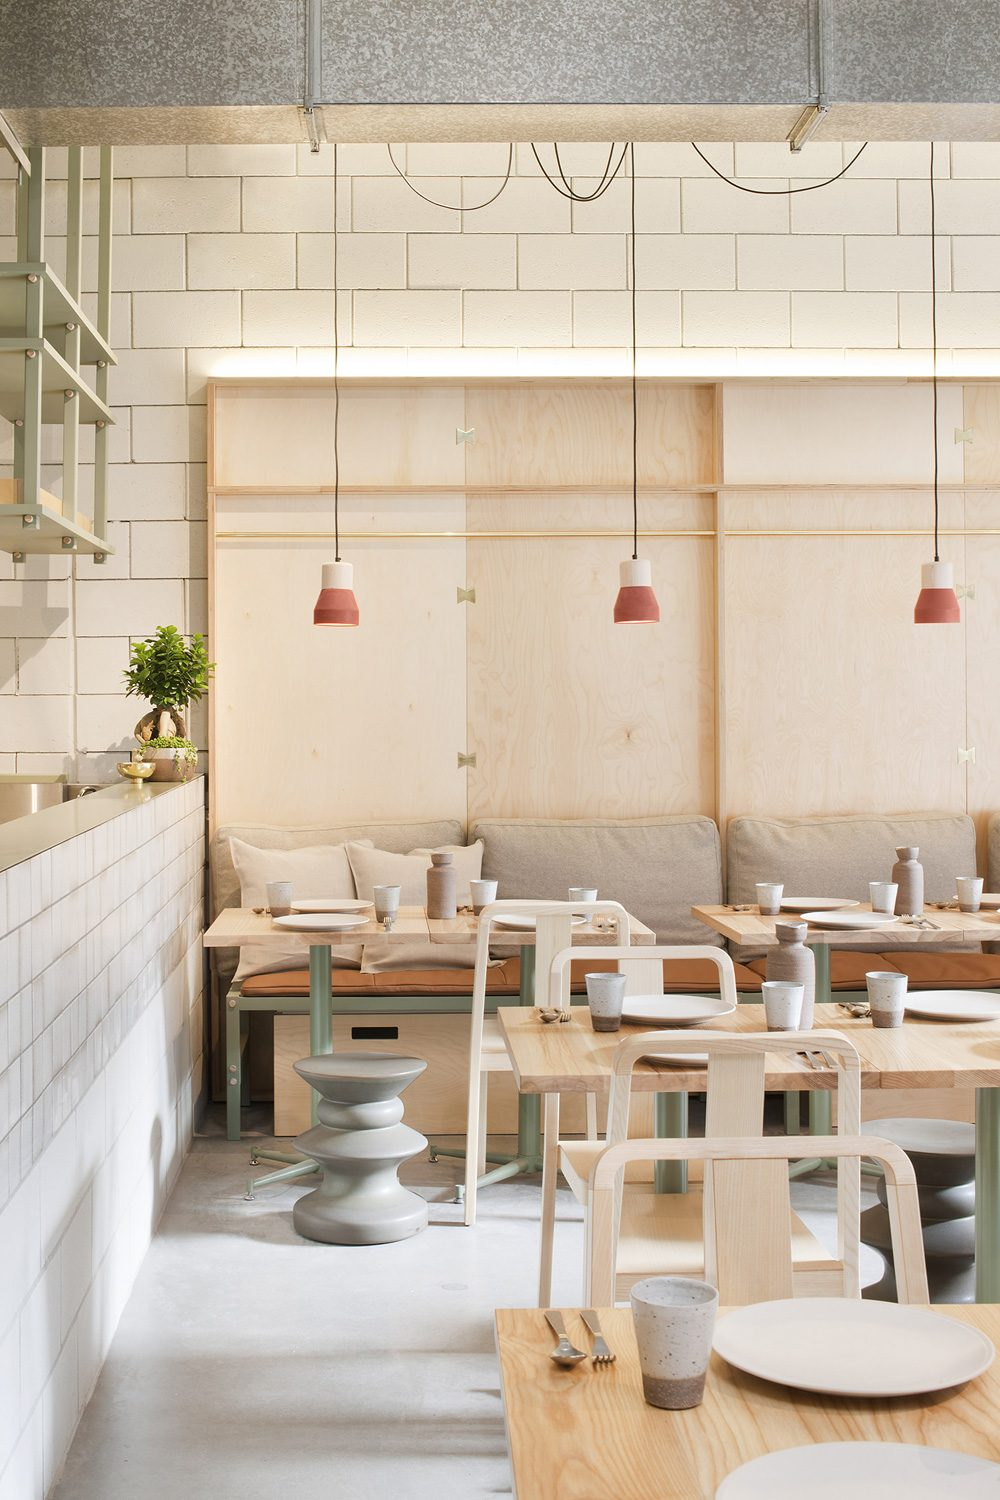 The interior design of Ruyi dumpling and wine bar in Melbourne